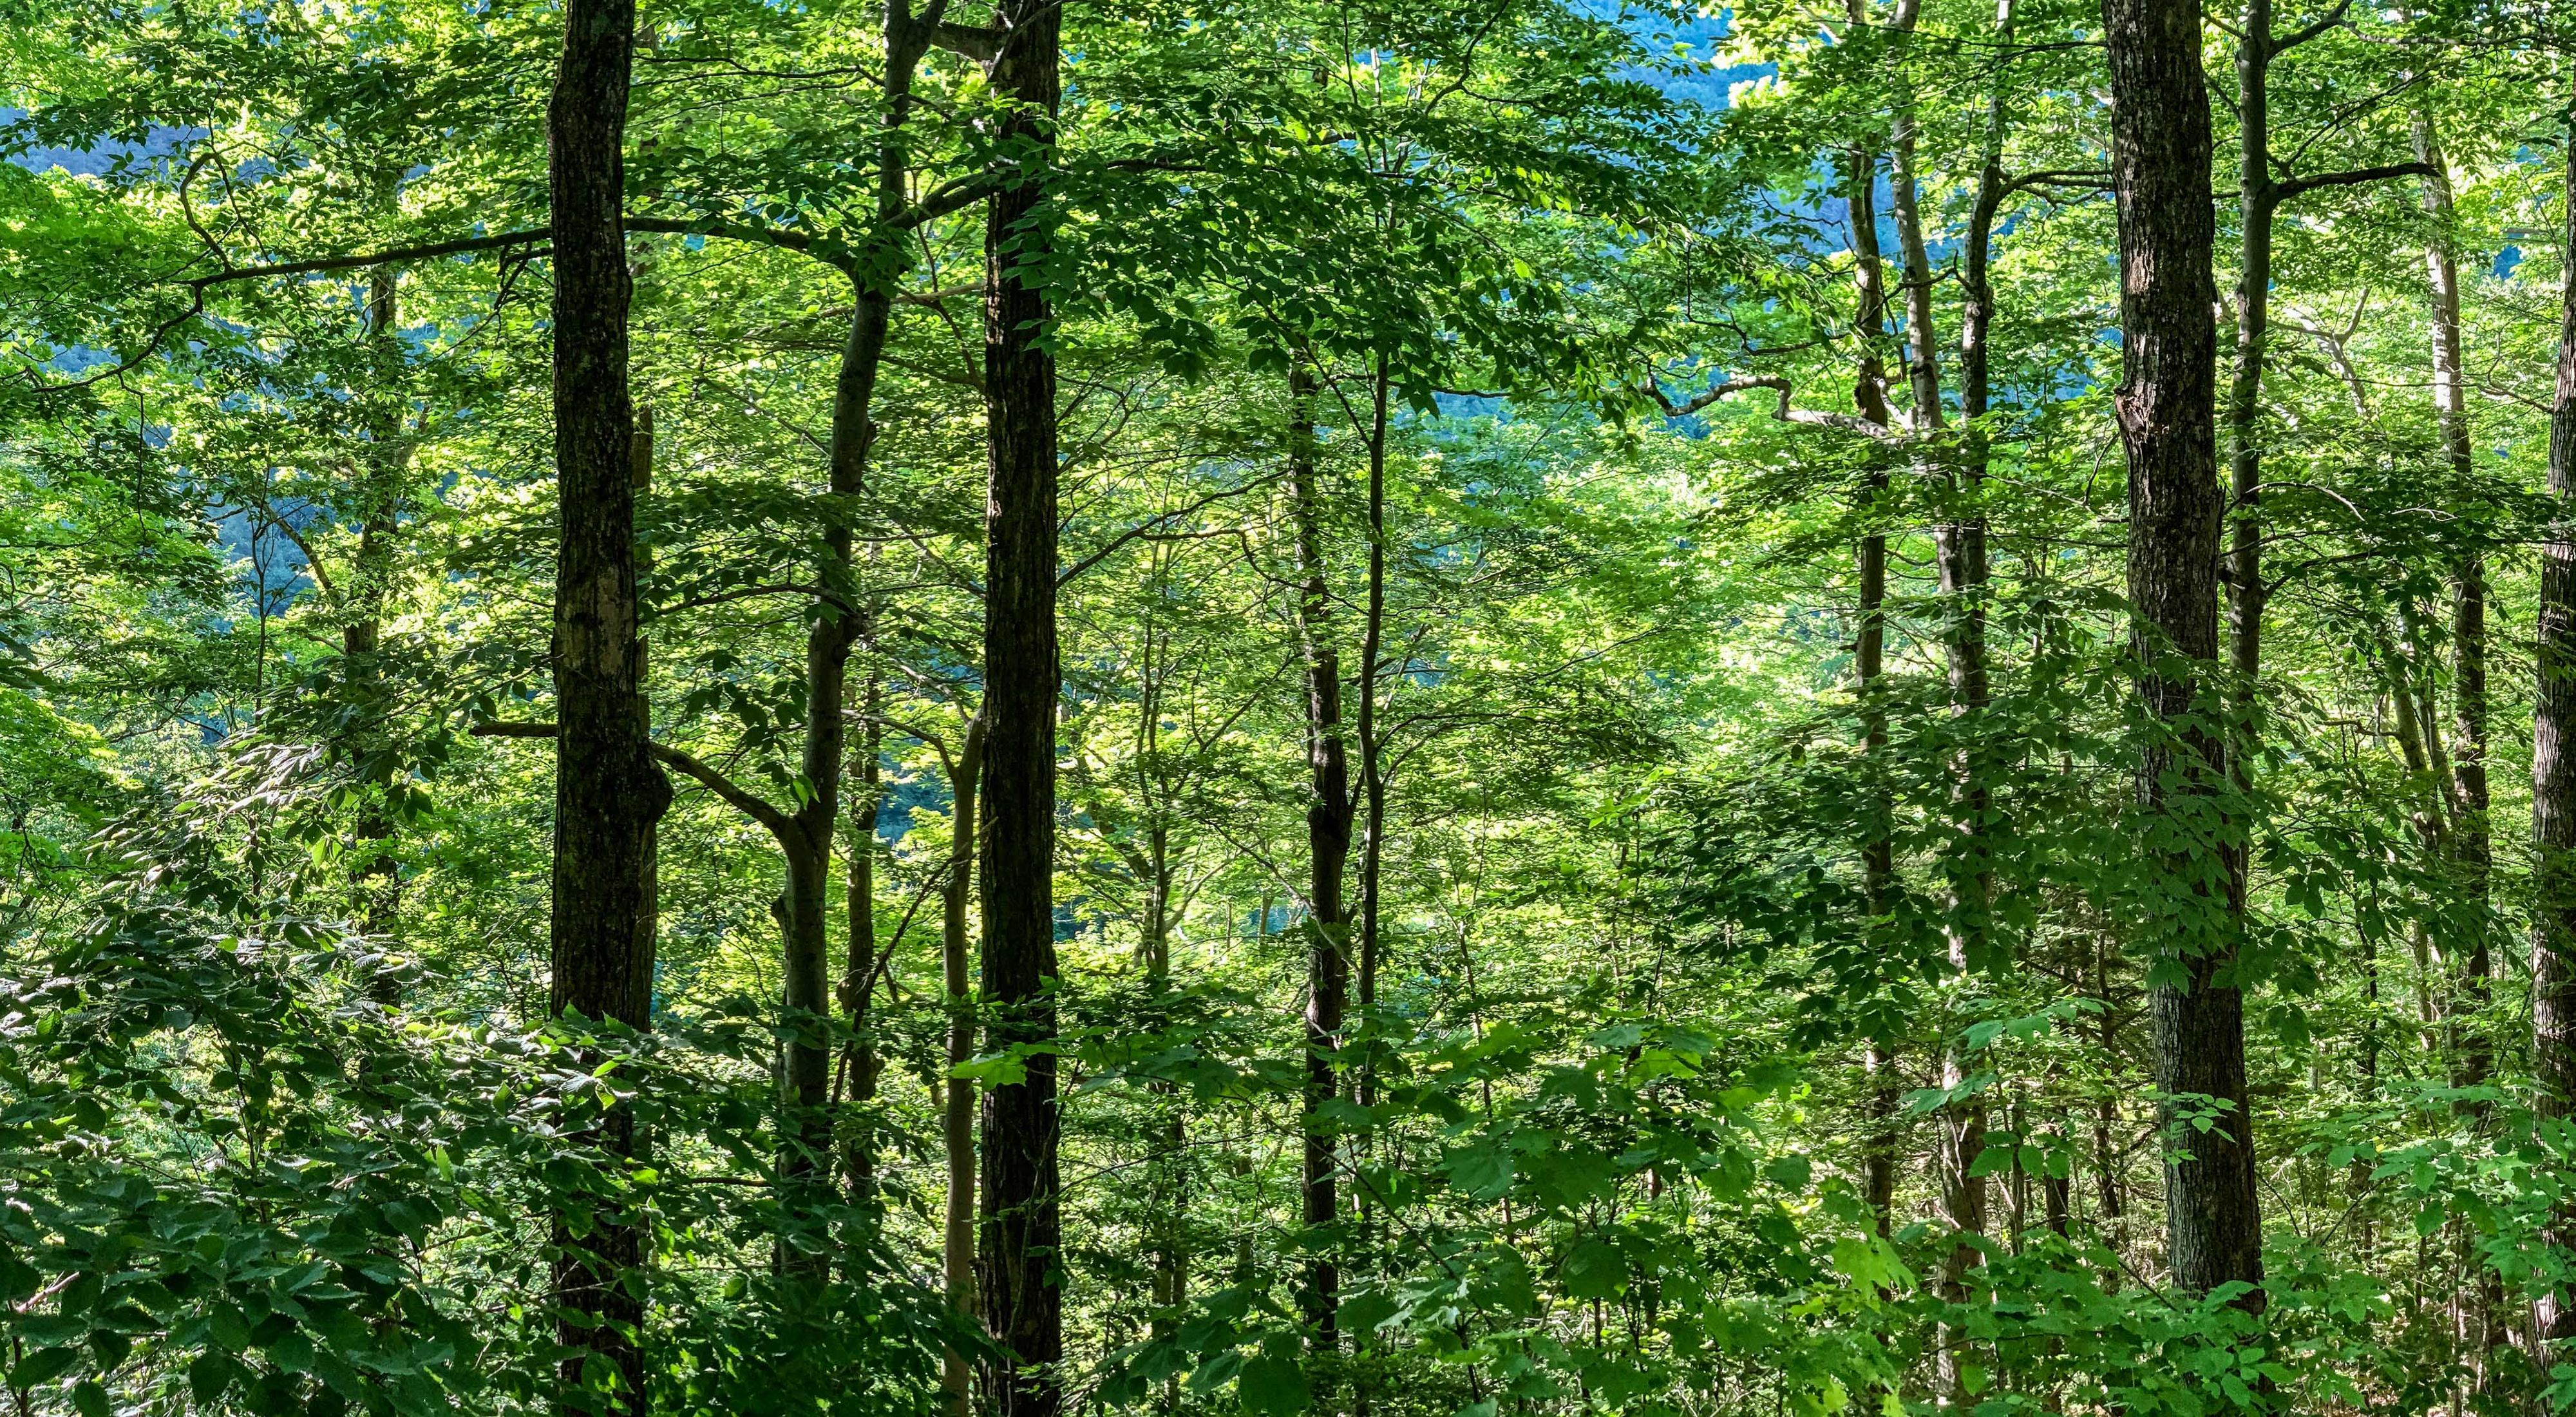 A mixture of mature hardwoods with hemlocks or spruces is the ideal nesting habitat for Blackburnian warblers.